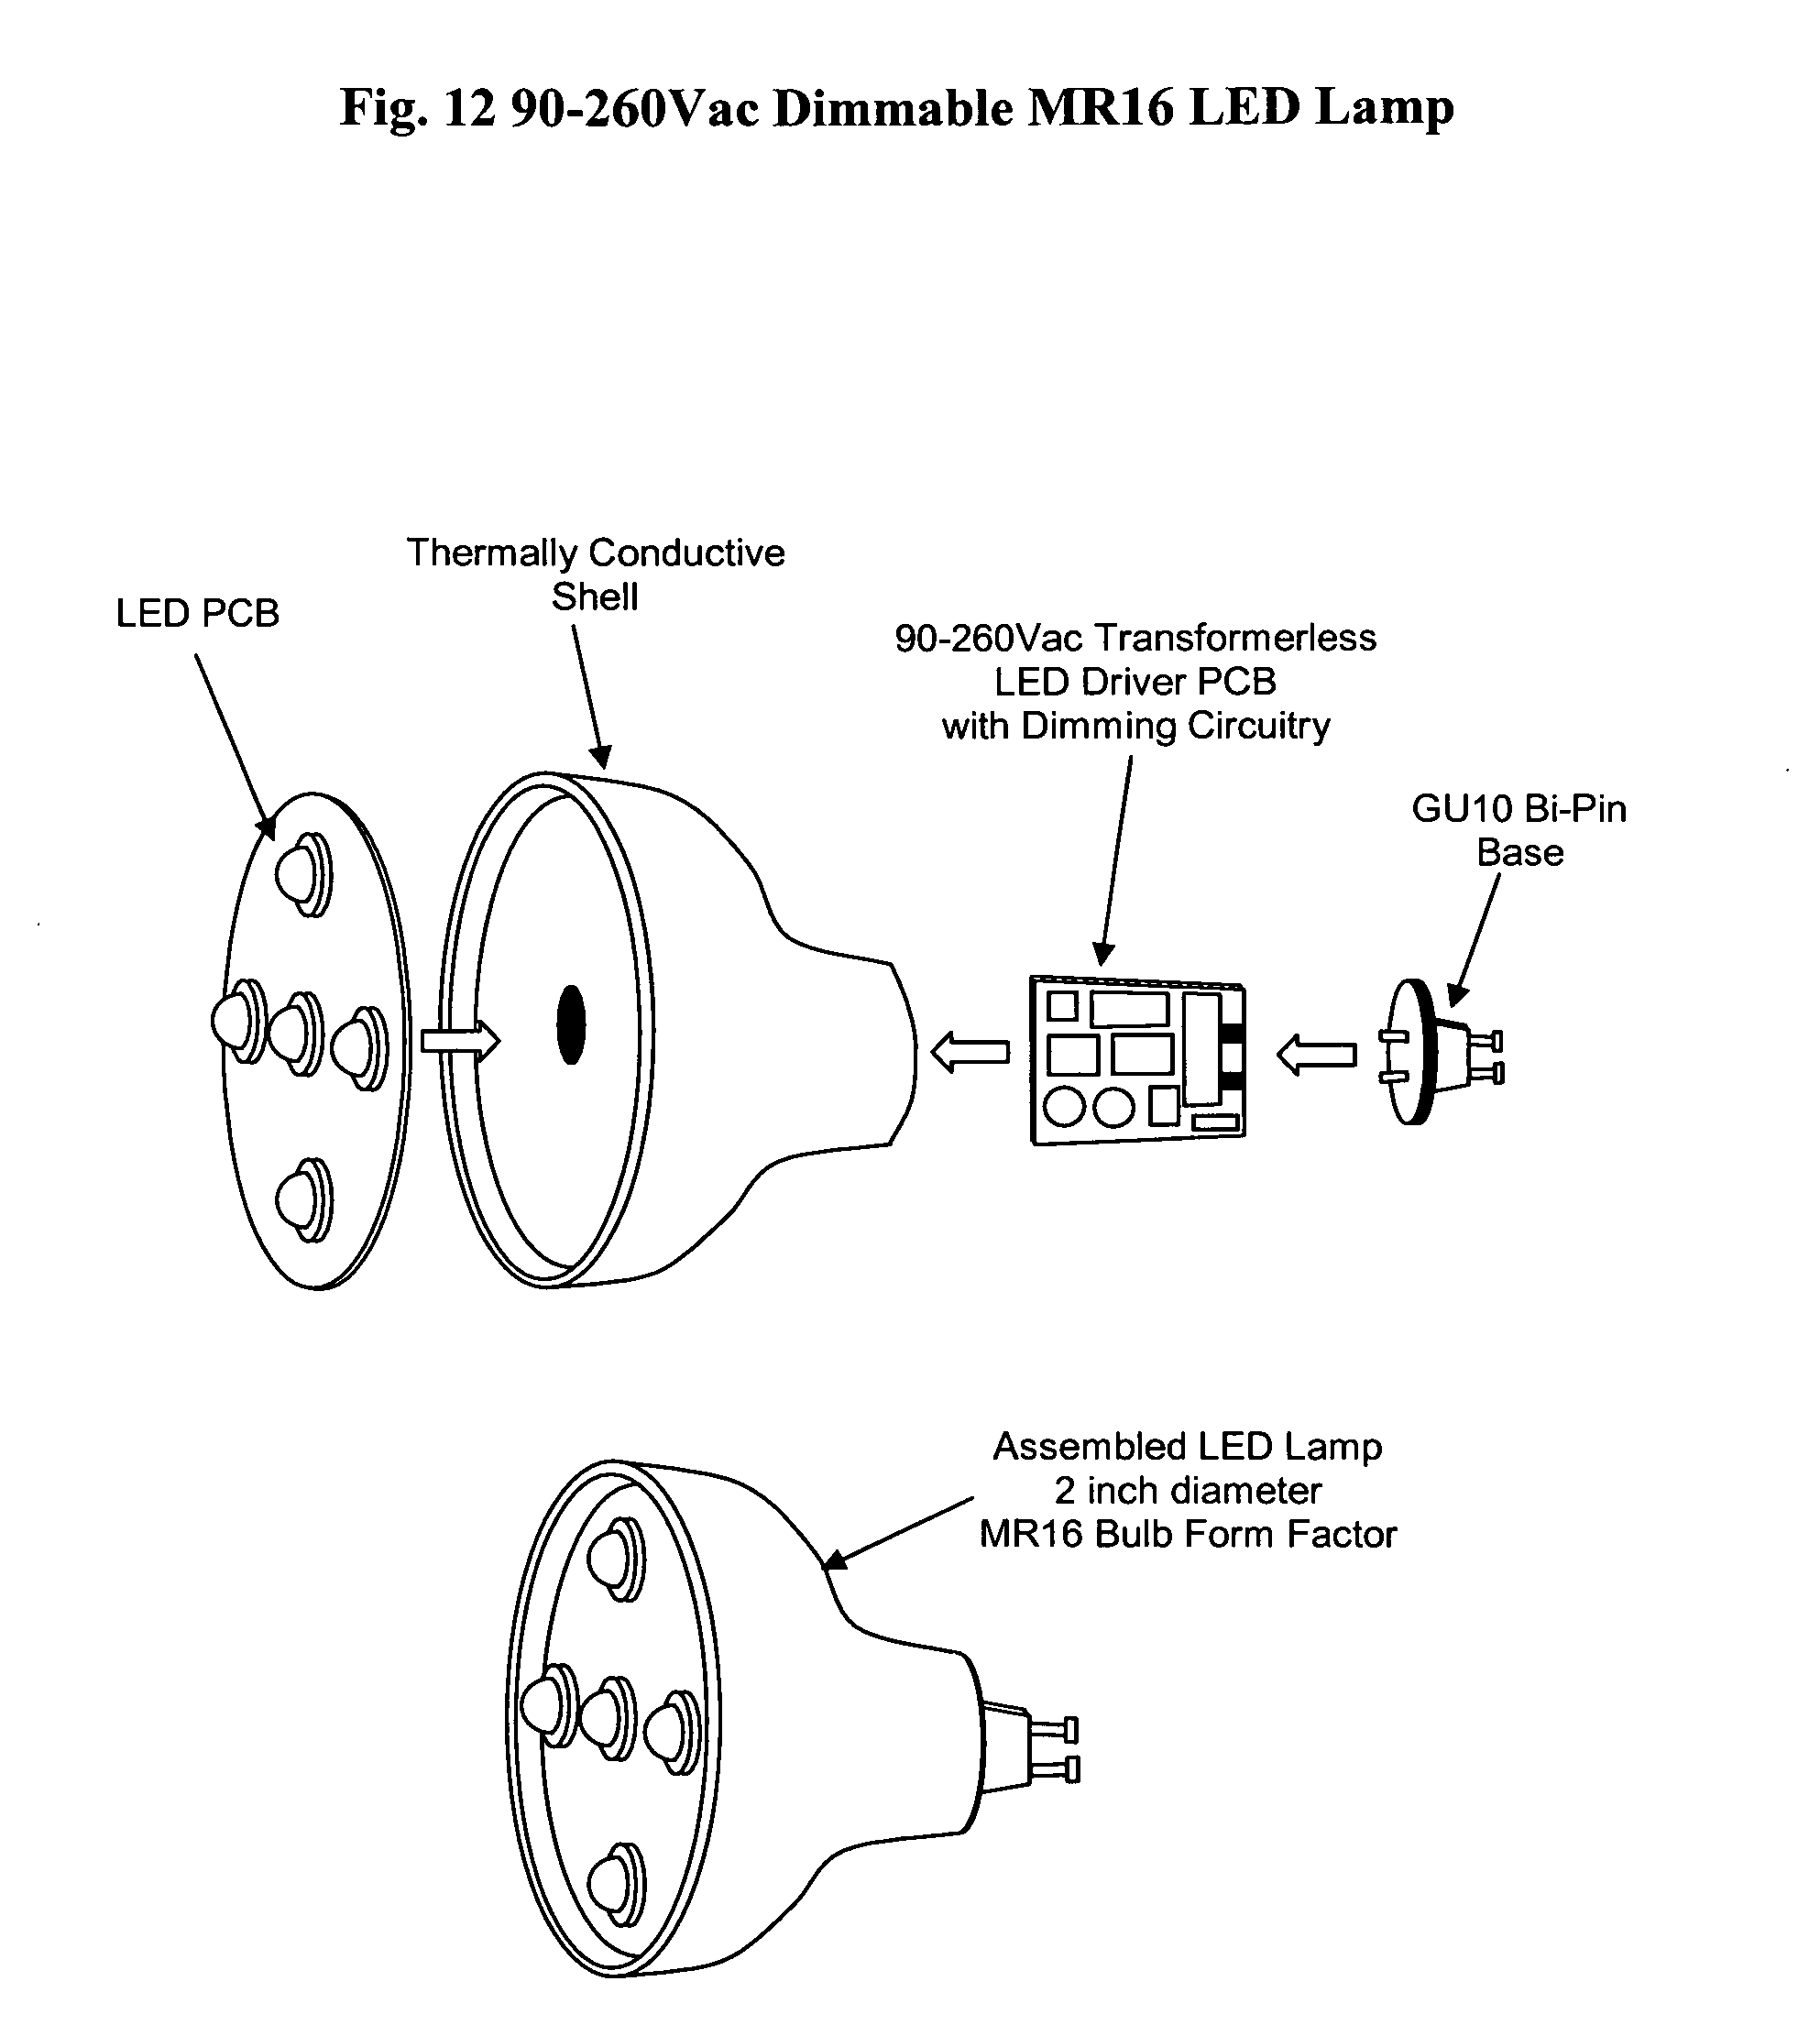 Led Mr16 Wiring Schematic Diagram Libraries Recessed Downlight Google Patents On In Downlights Patent Us20110068703 90 260vac Dimmable Lamp